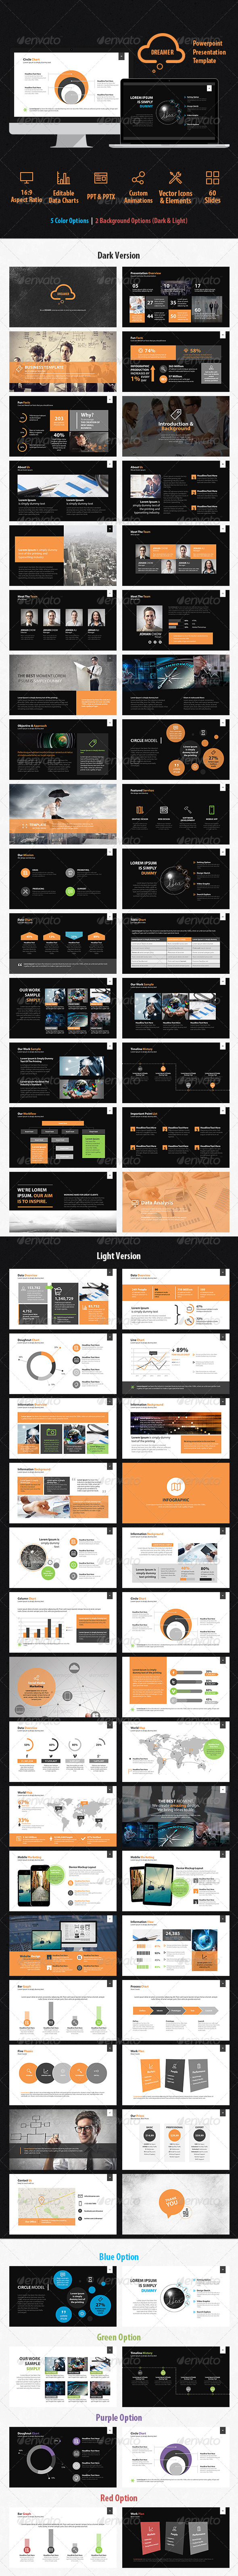 GraphicRiver Dreamer Powerpoint Presentation Template 7629768